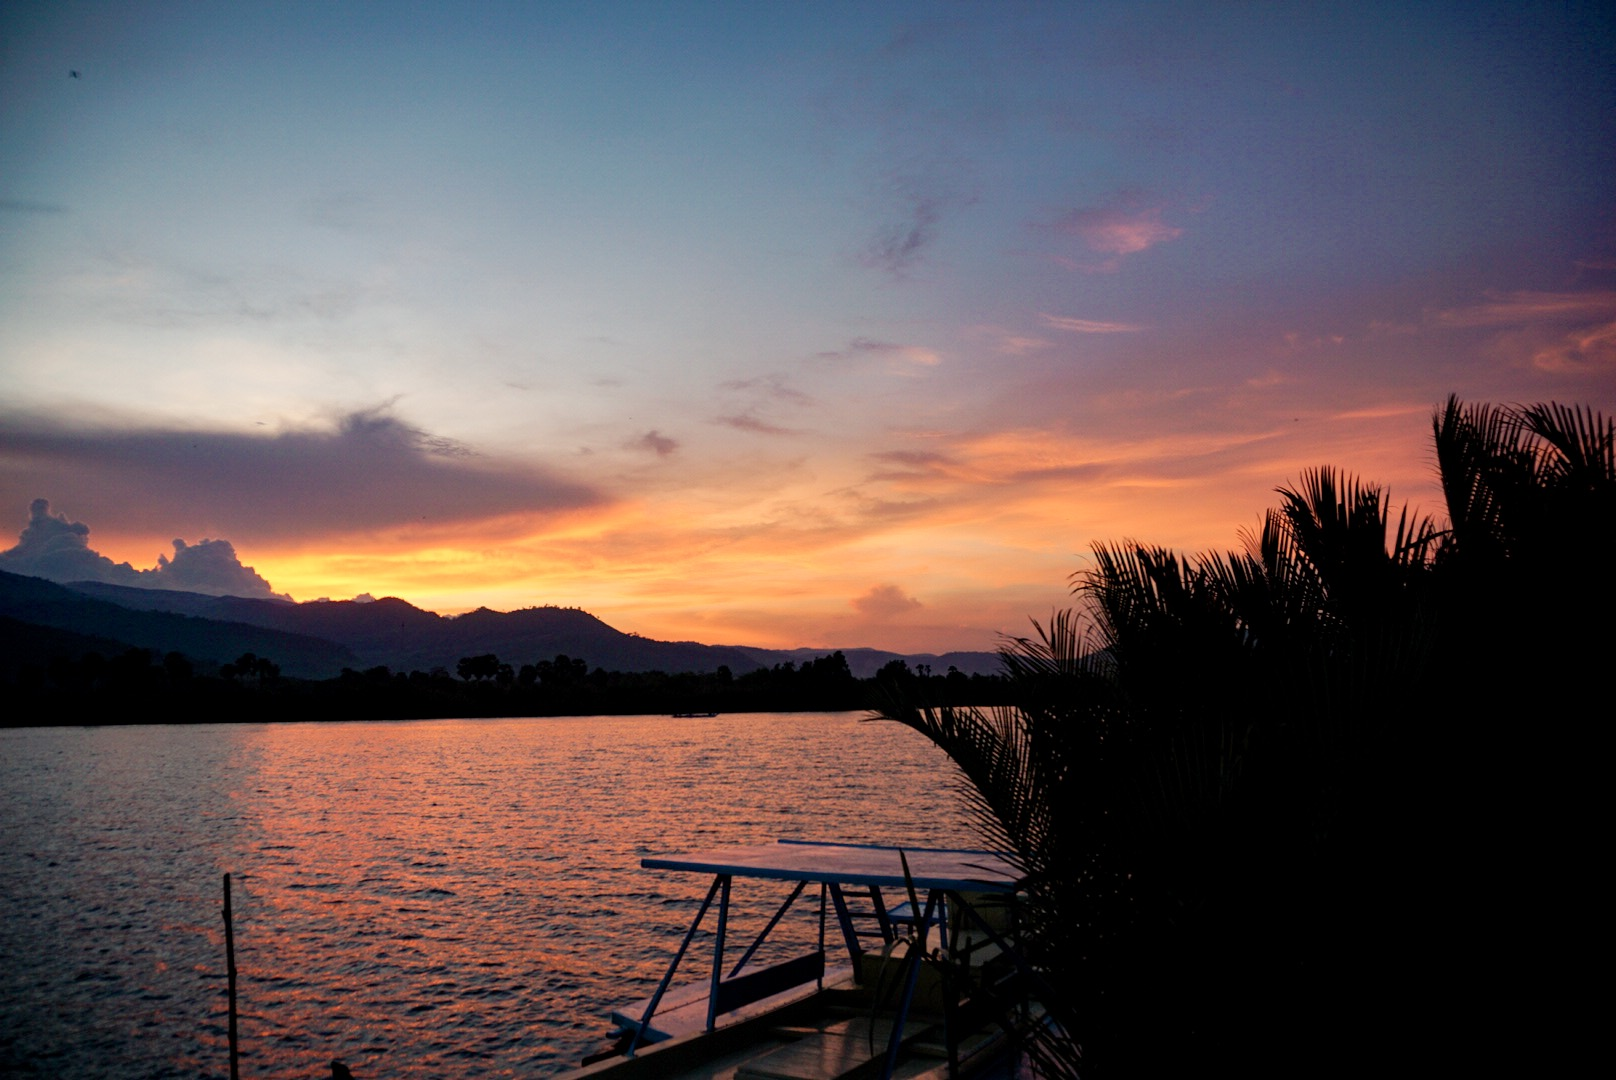 Sunset by the Kampot River